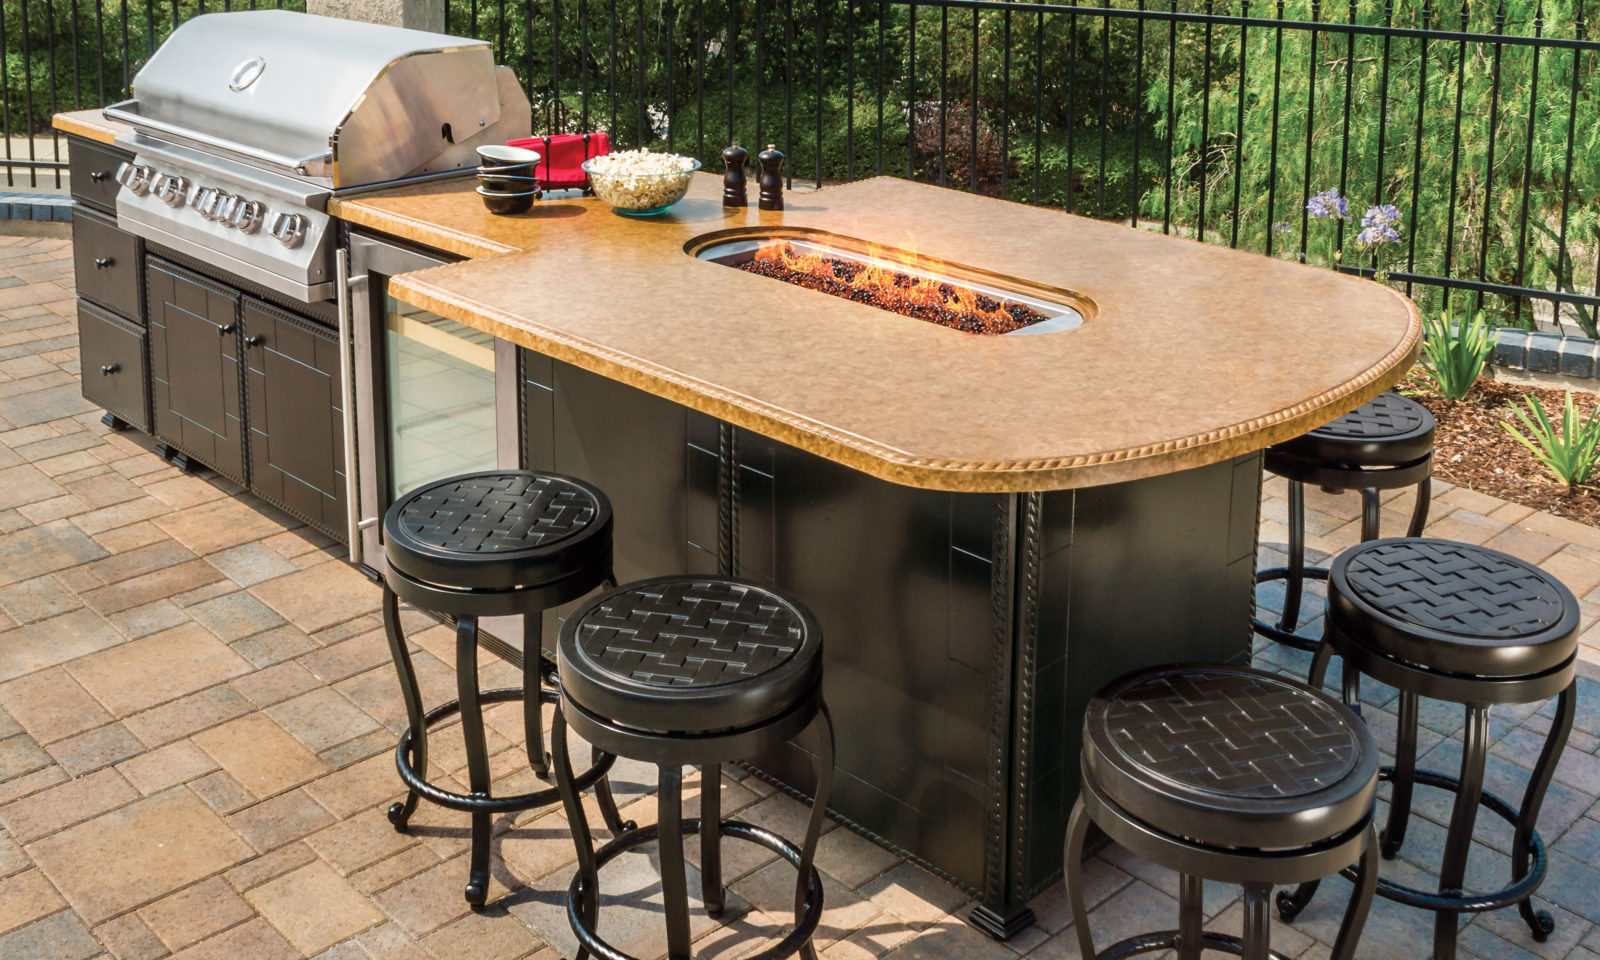 Lion Premium Grills Newsletter January 2017 Issue 40